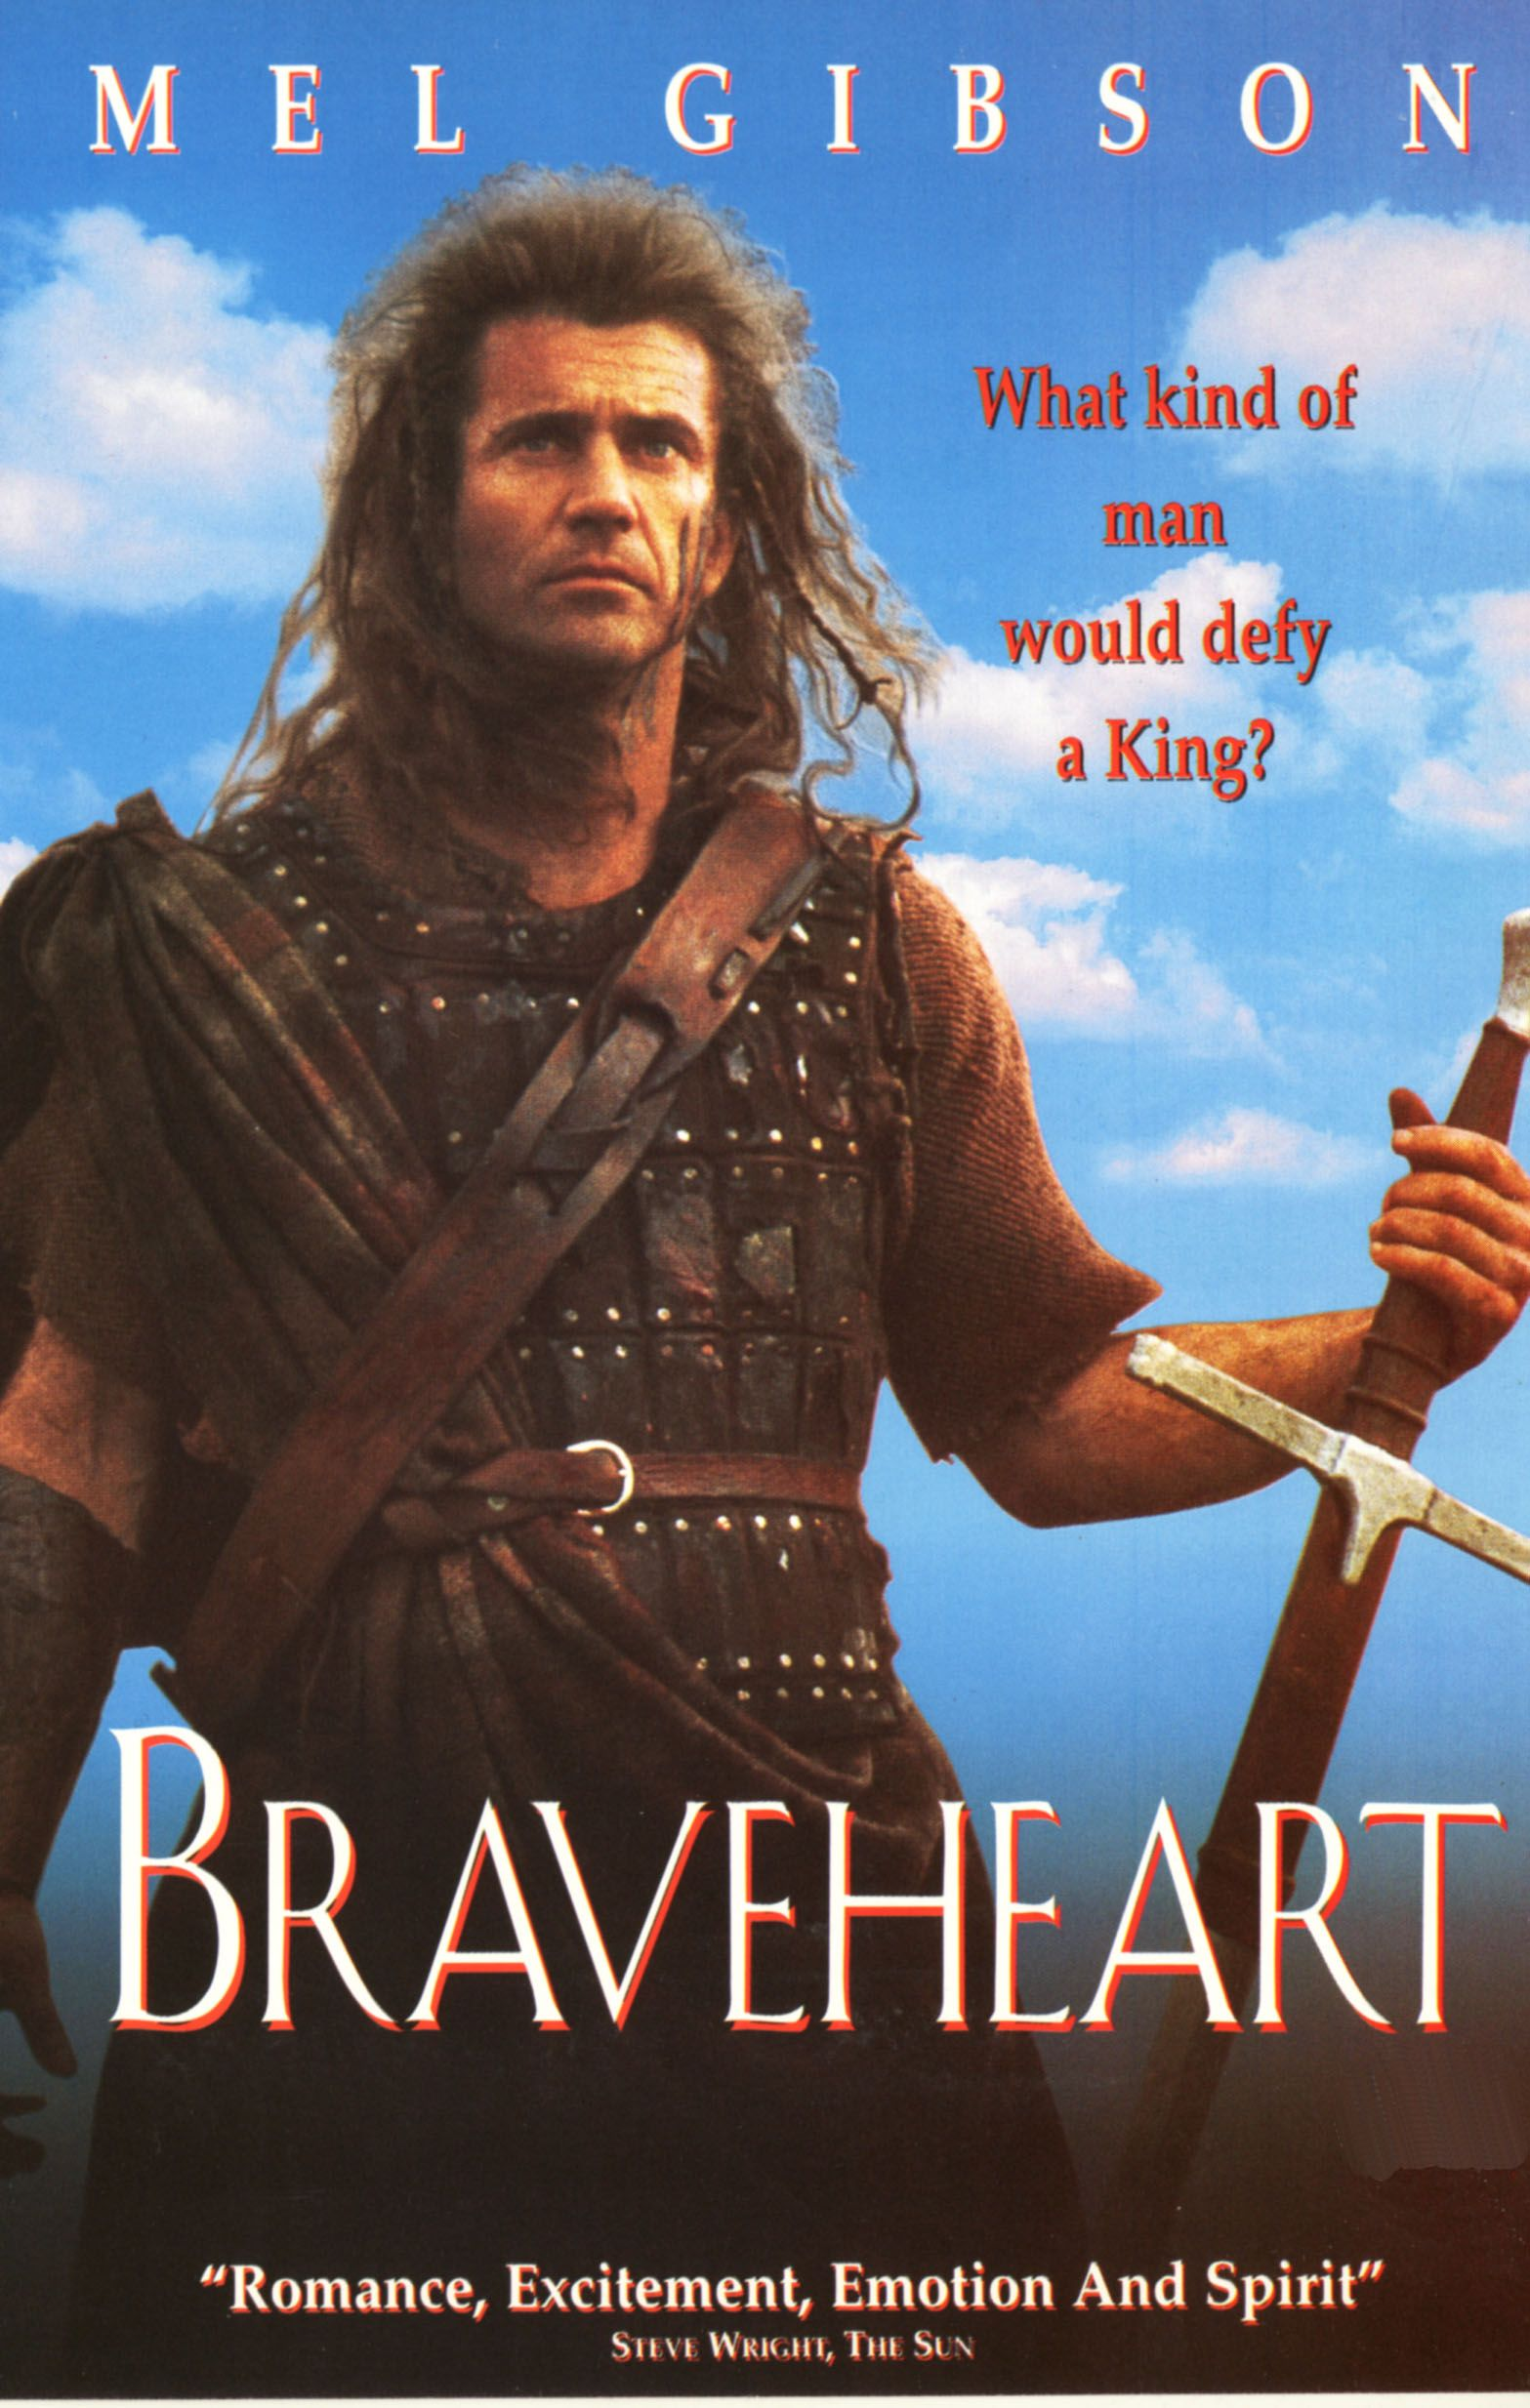 braveheart essay Braveheart essays | see the list of sample papers for free - bla bla writing braveheart, directed by mel gibson, was released in 1995 and since then has won a total of 5 academy awards.